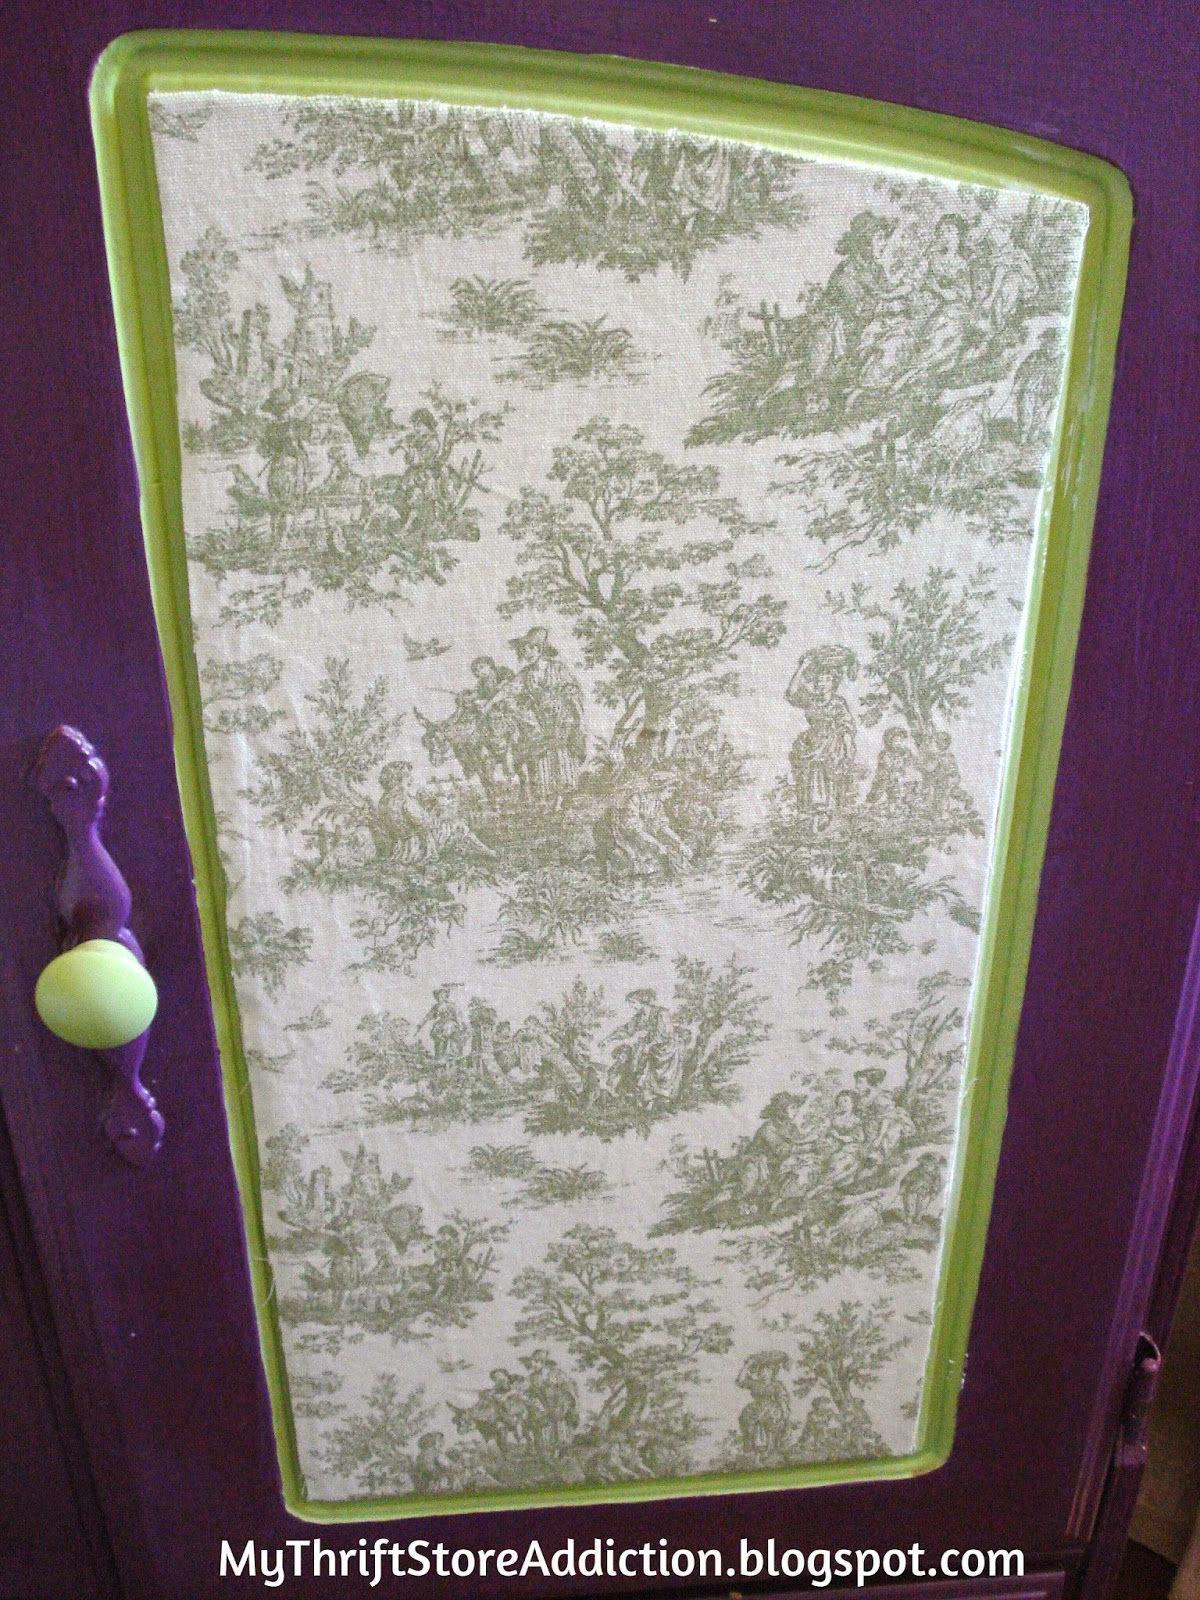 Miss Plum Puts on Her Toile Dress! mythriftstoreaddiction.blogspot.com How to mod podge fabric to furniture